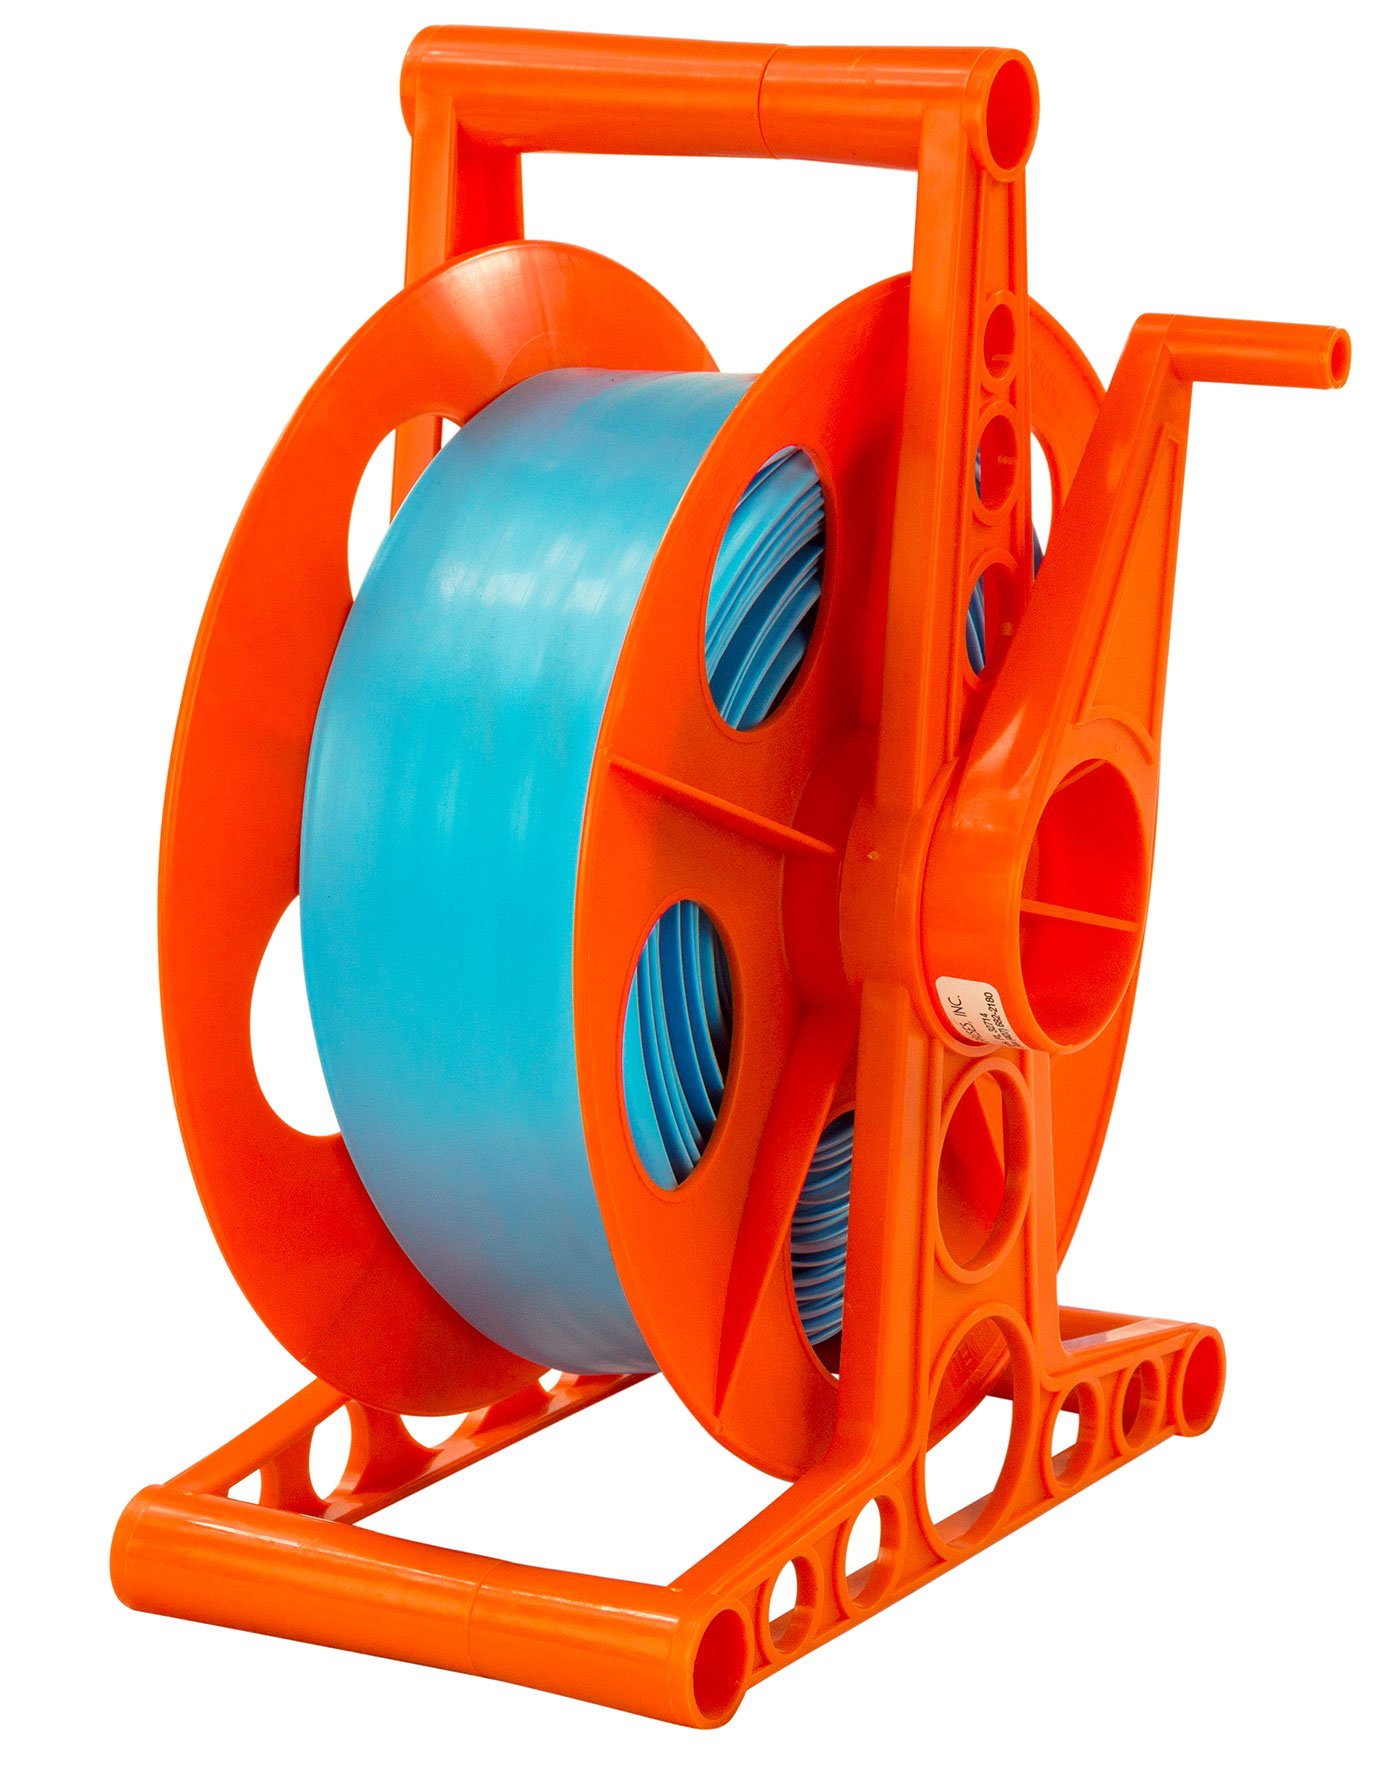 LASS ENTERPRISES Swimming Pool Backwash Discharge Hose Reel - Includes 100 ft Hose by LASS ENTERPRISES